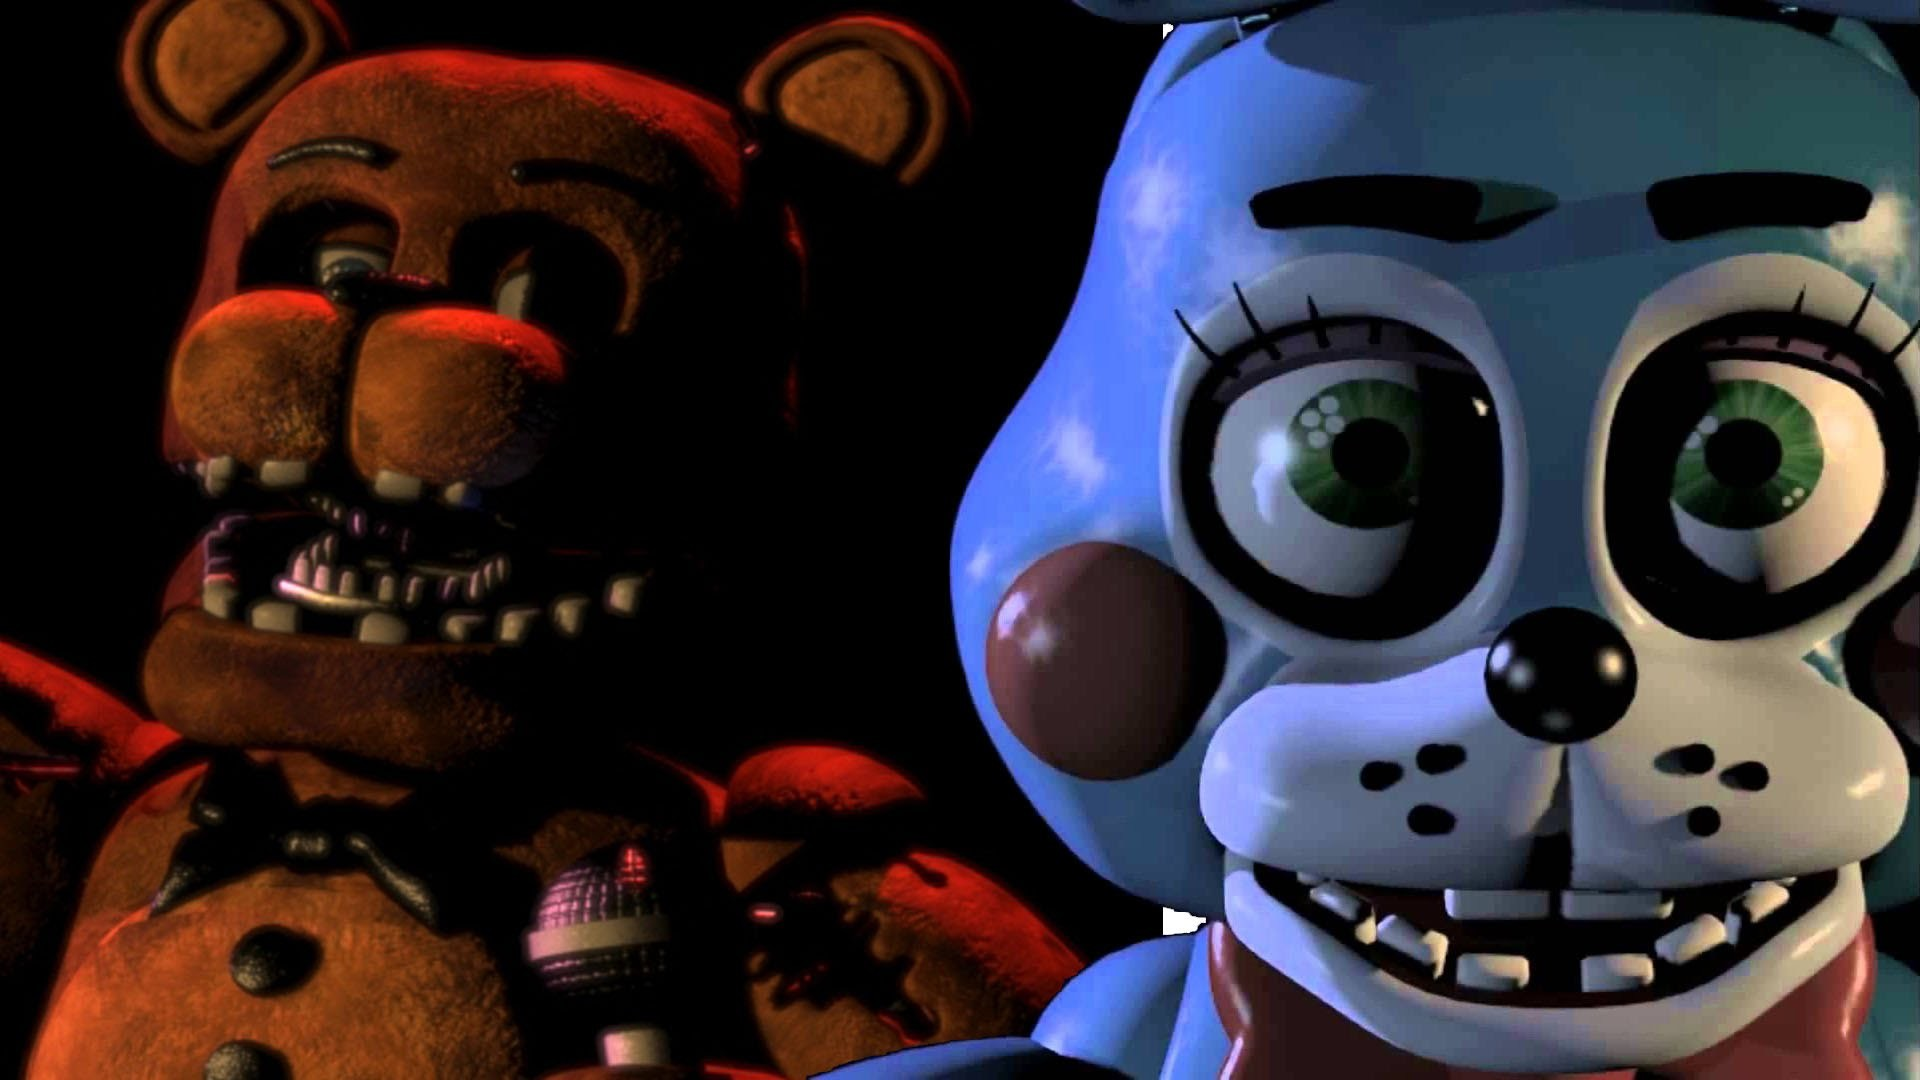 1920x1080 FIVE NIGHTS AT FREDDY'S 2 | Top 5 Reactions HD (PewDiePie, Markiplier,  Jacksepticeye and more!) - YouTube